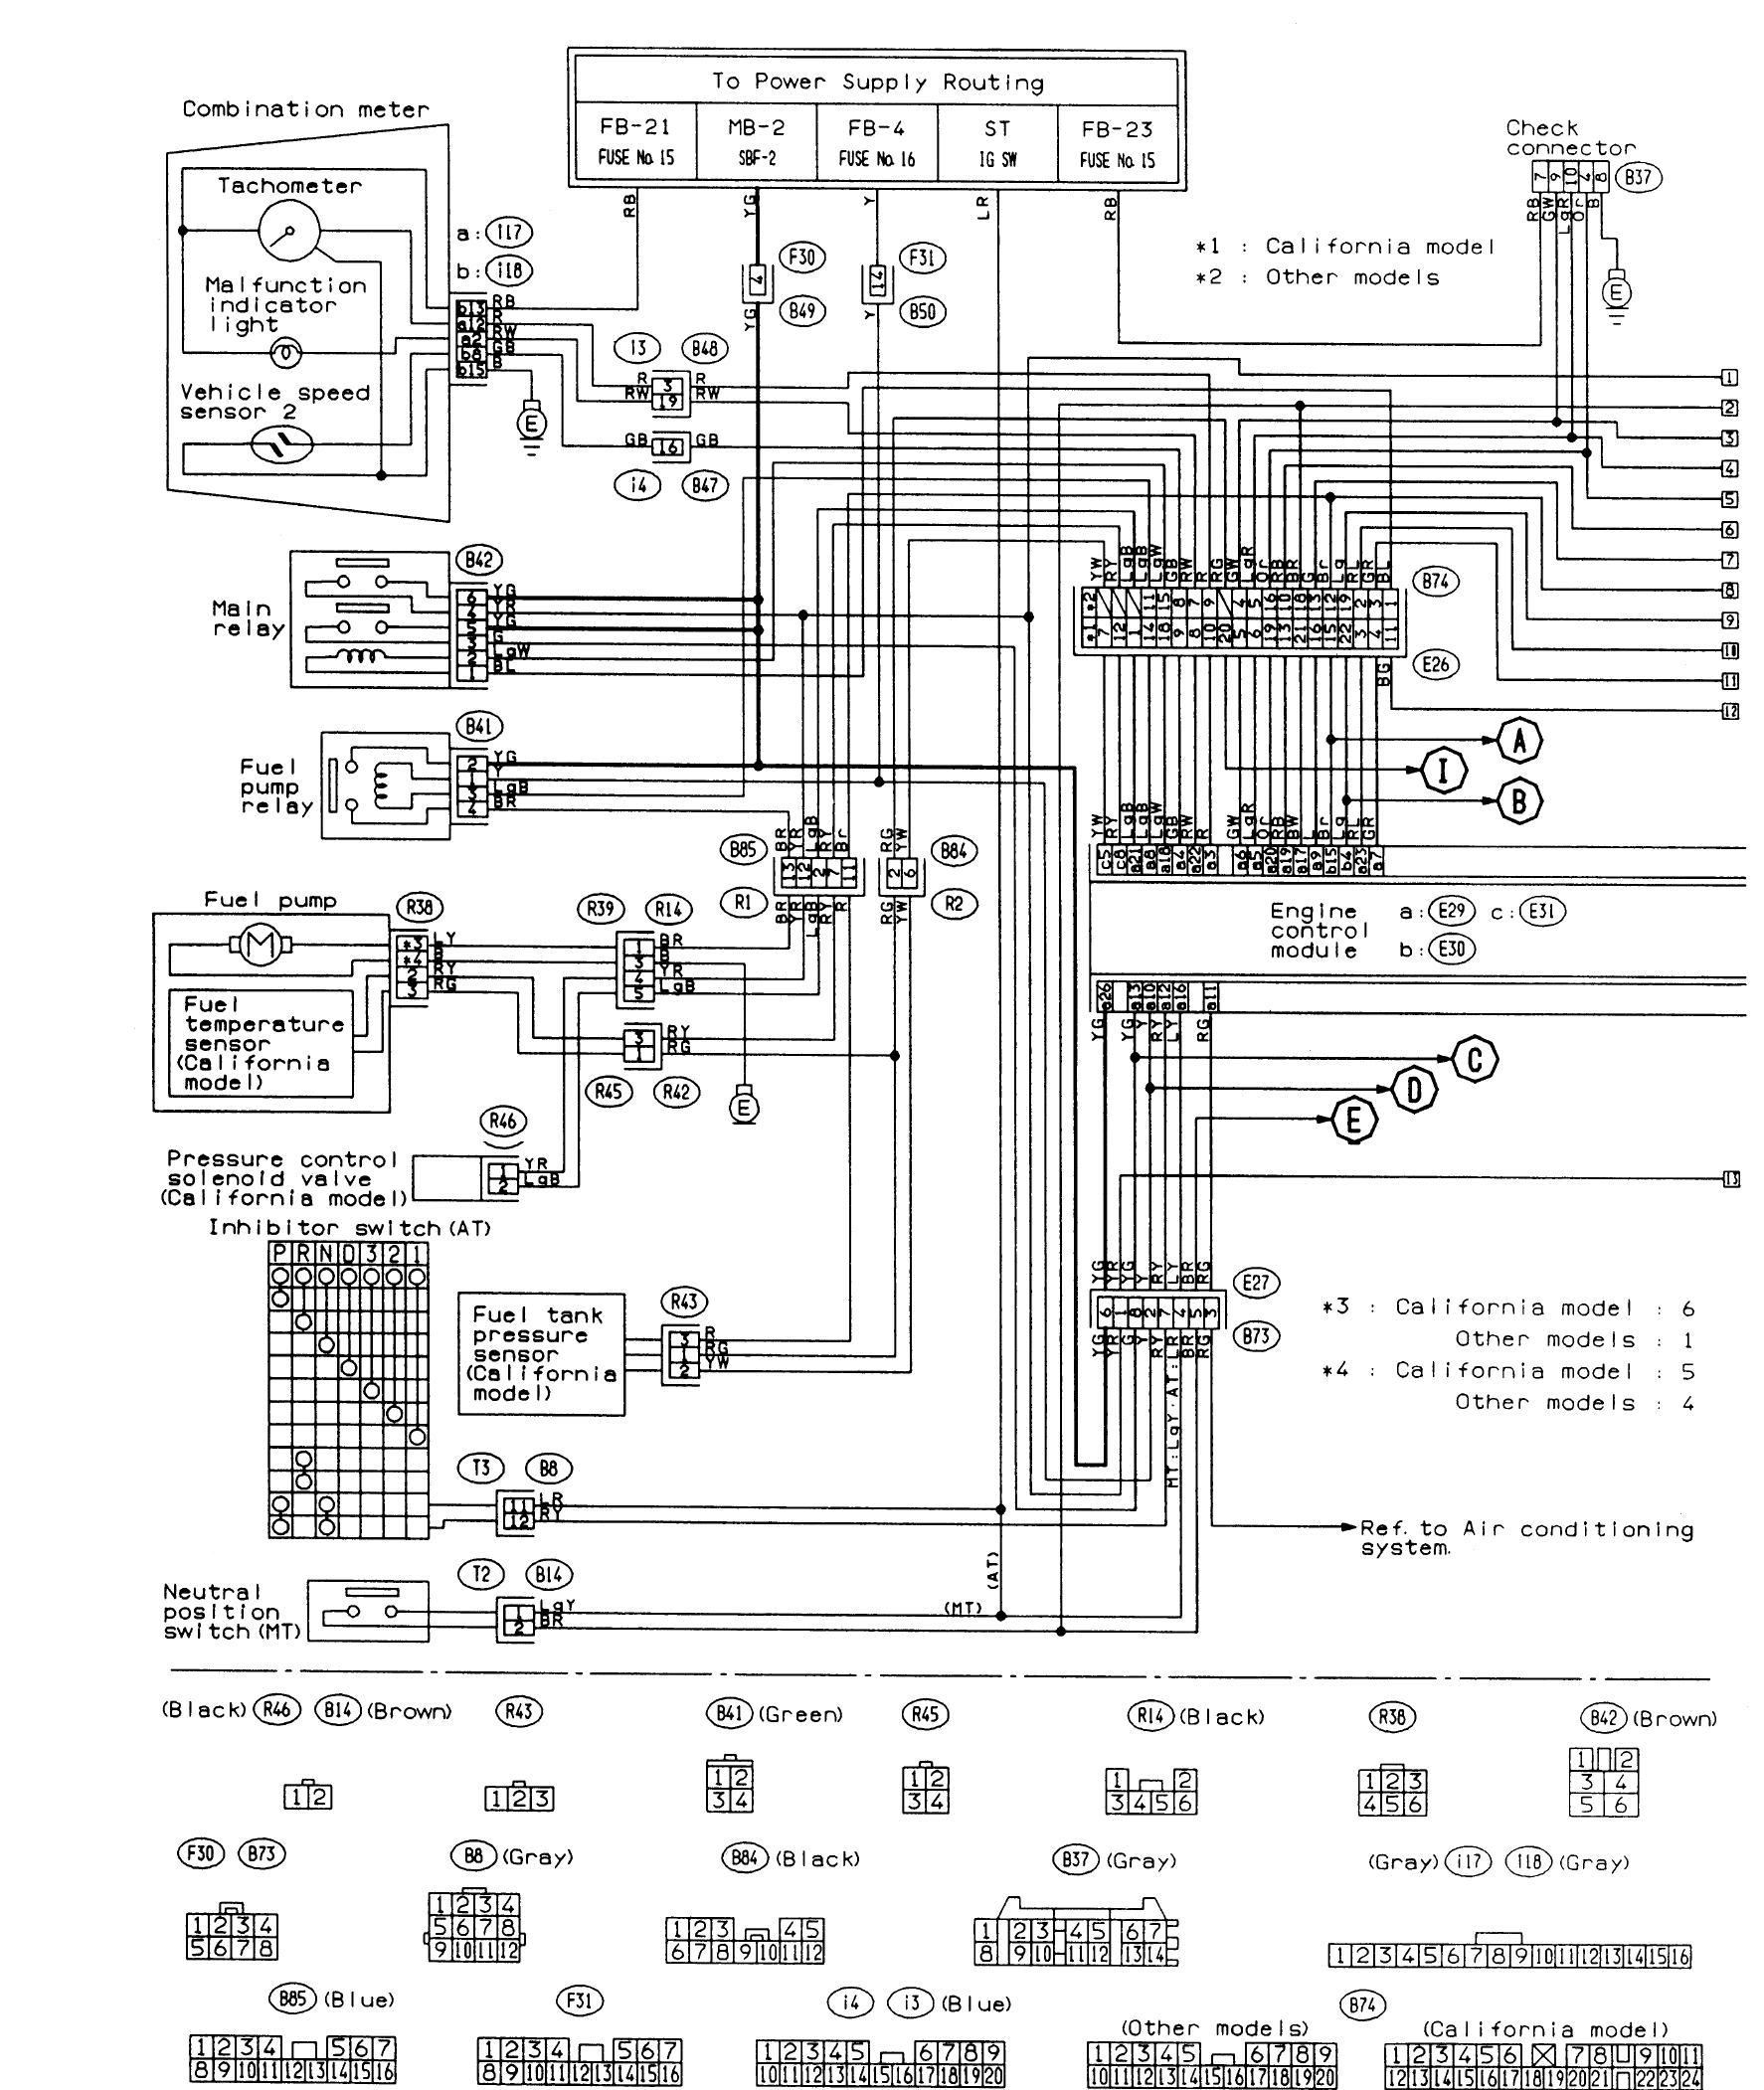 subaru ecu wiring diagram FUSlrCX 93 subaru legacy wiring diagram 1995 subaru legacy wiring diagram subaru steering wheel wiring diagram at readyjetset.co